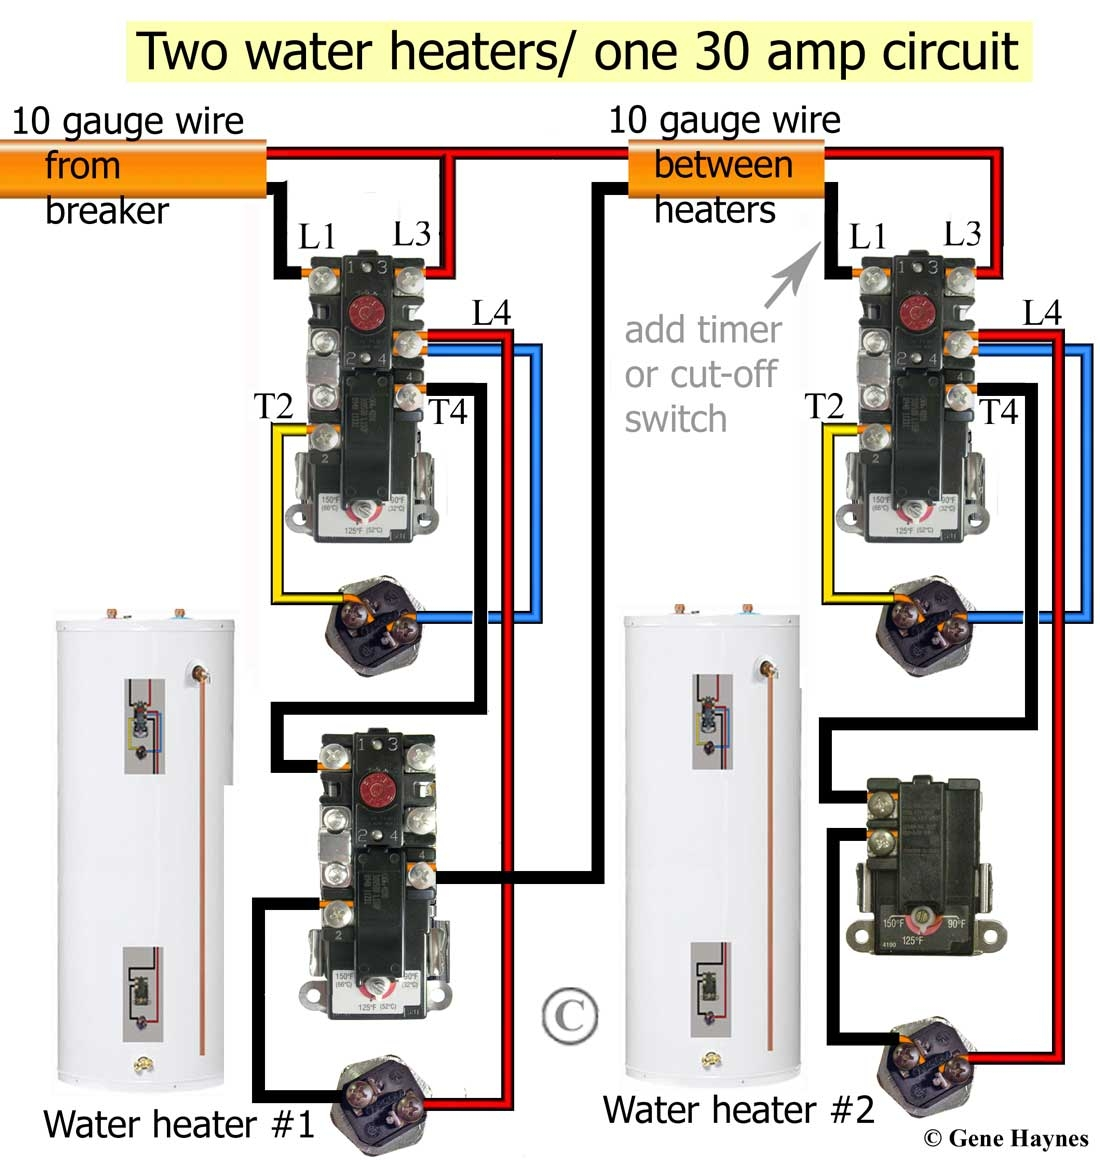 hot water heater wiring schematic typical hot water heater wiring schematic